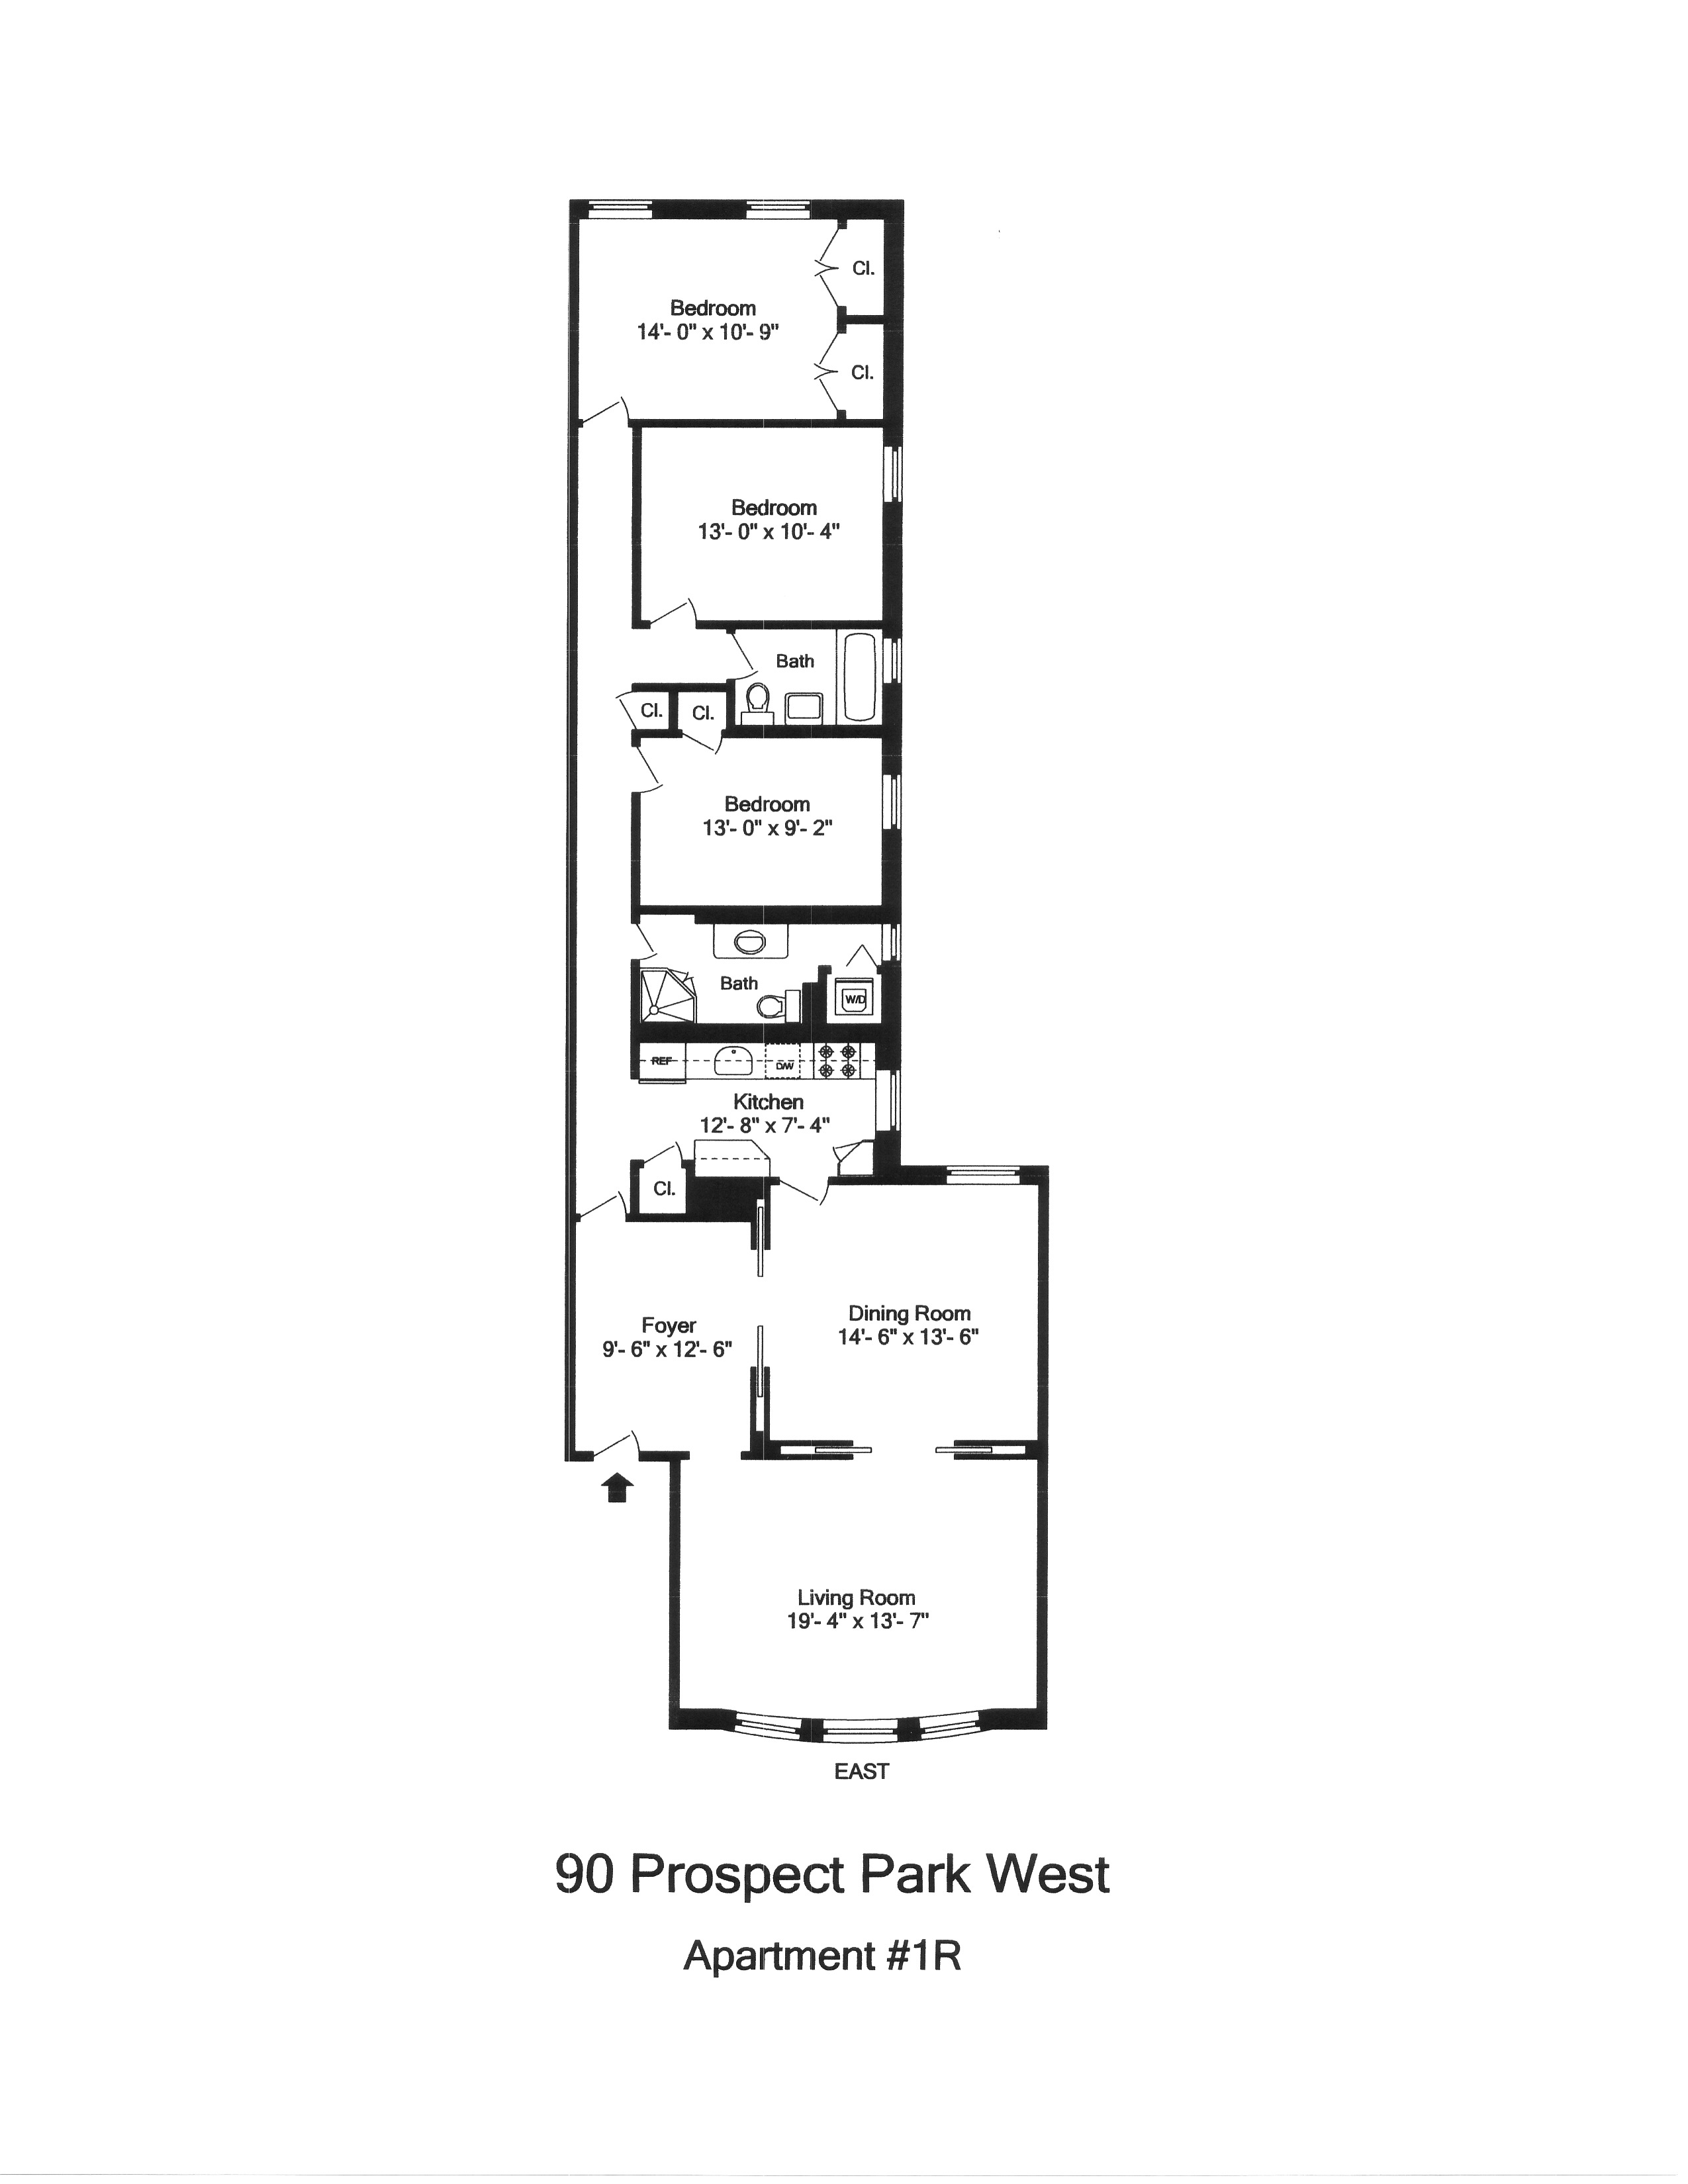 House renovation project plan - Our Client For This Project Was A Contractor Proposing A Renovation Project To A Young Family